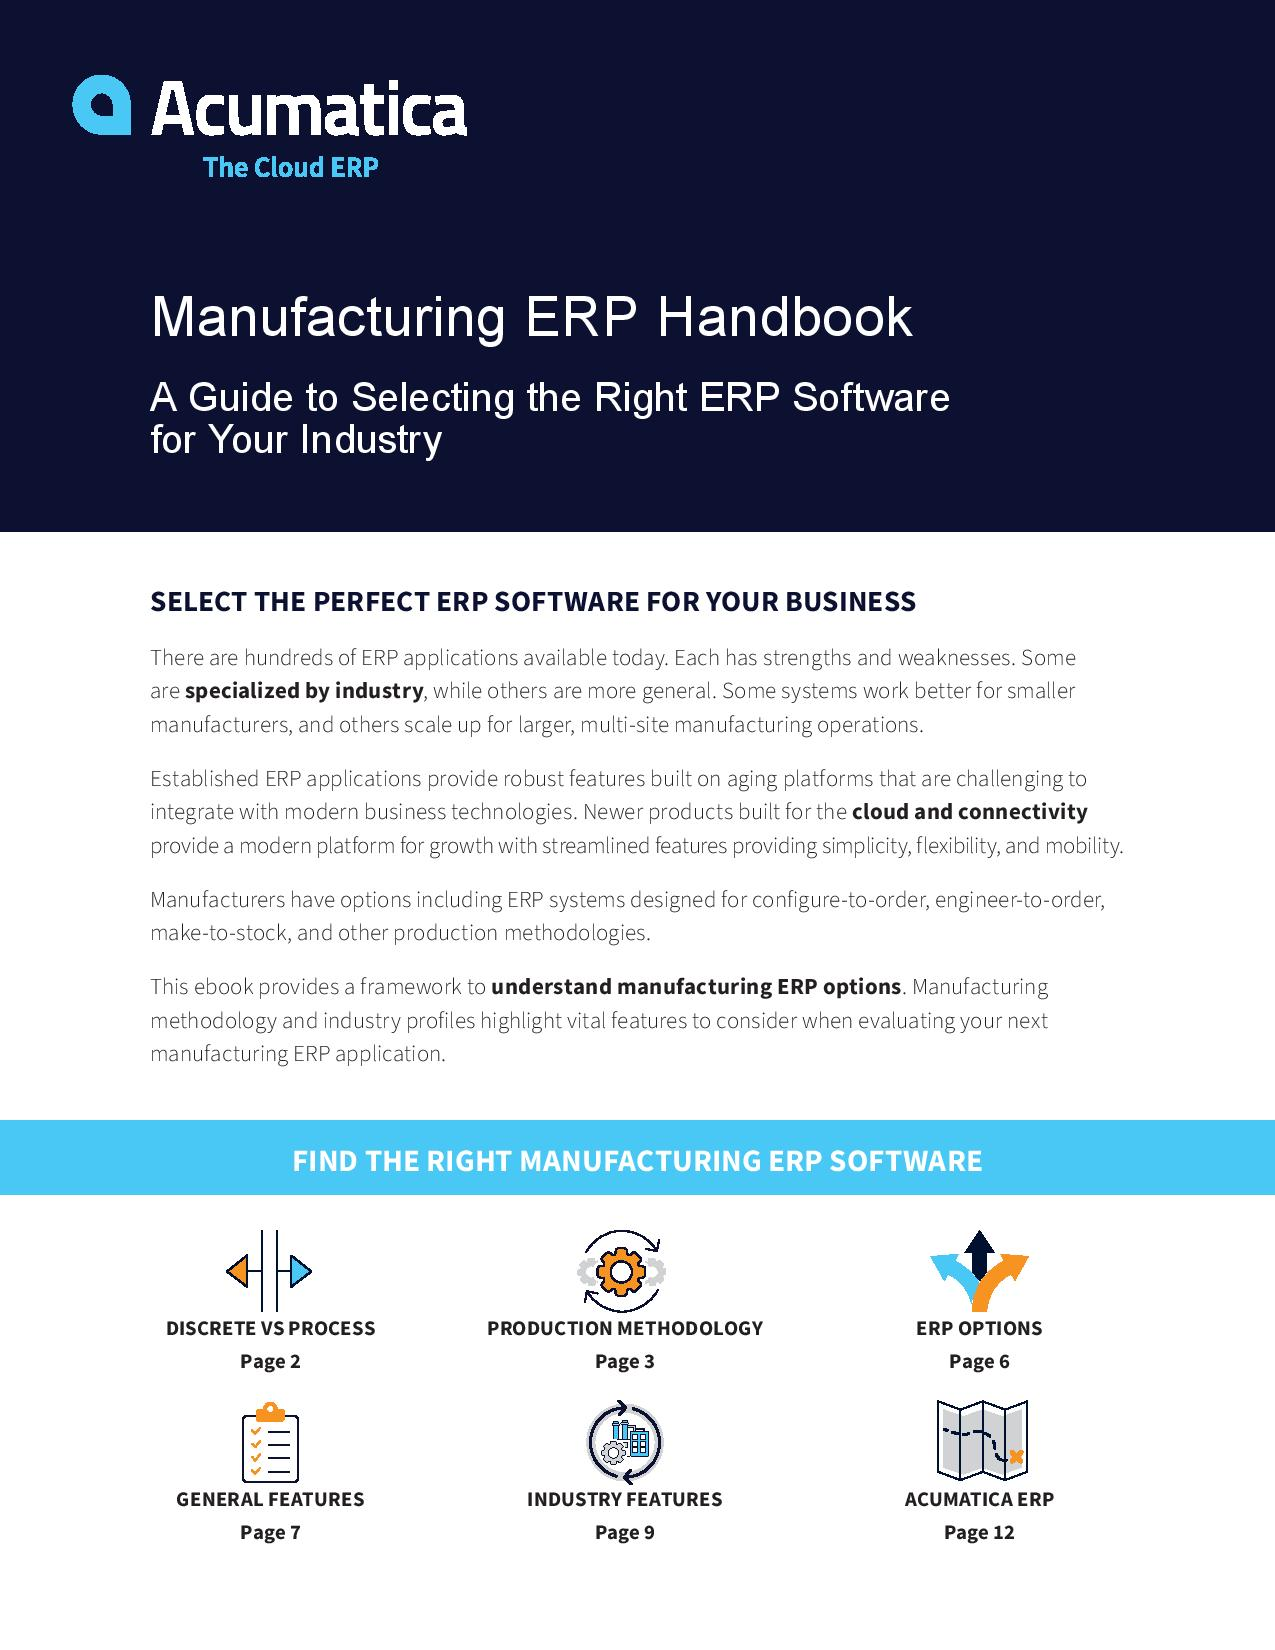 The Manufacturing ERP Guide, page 0